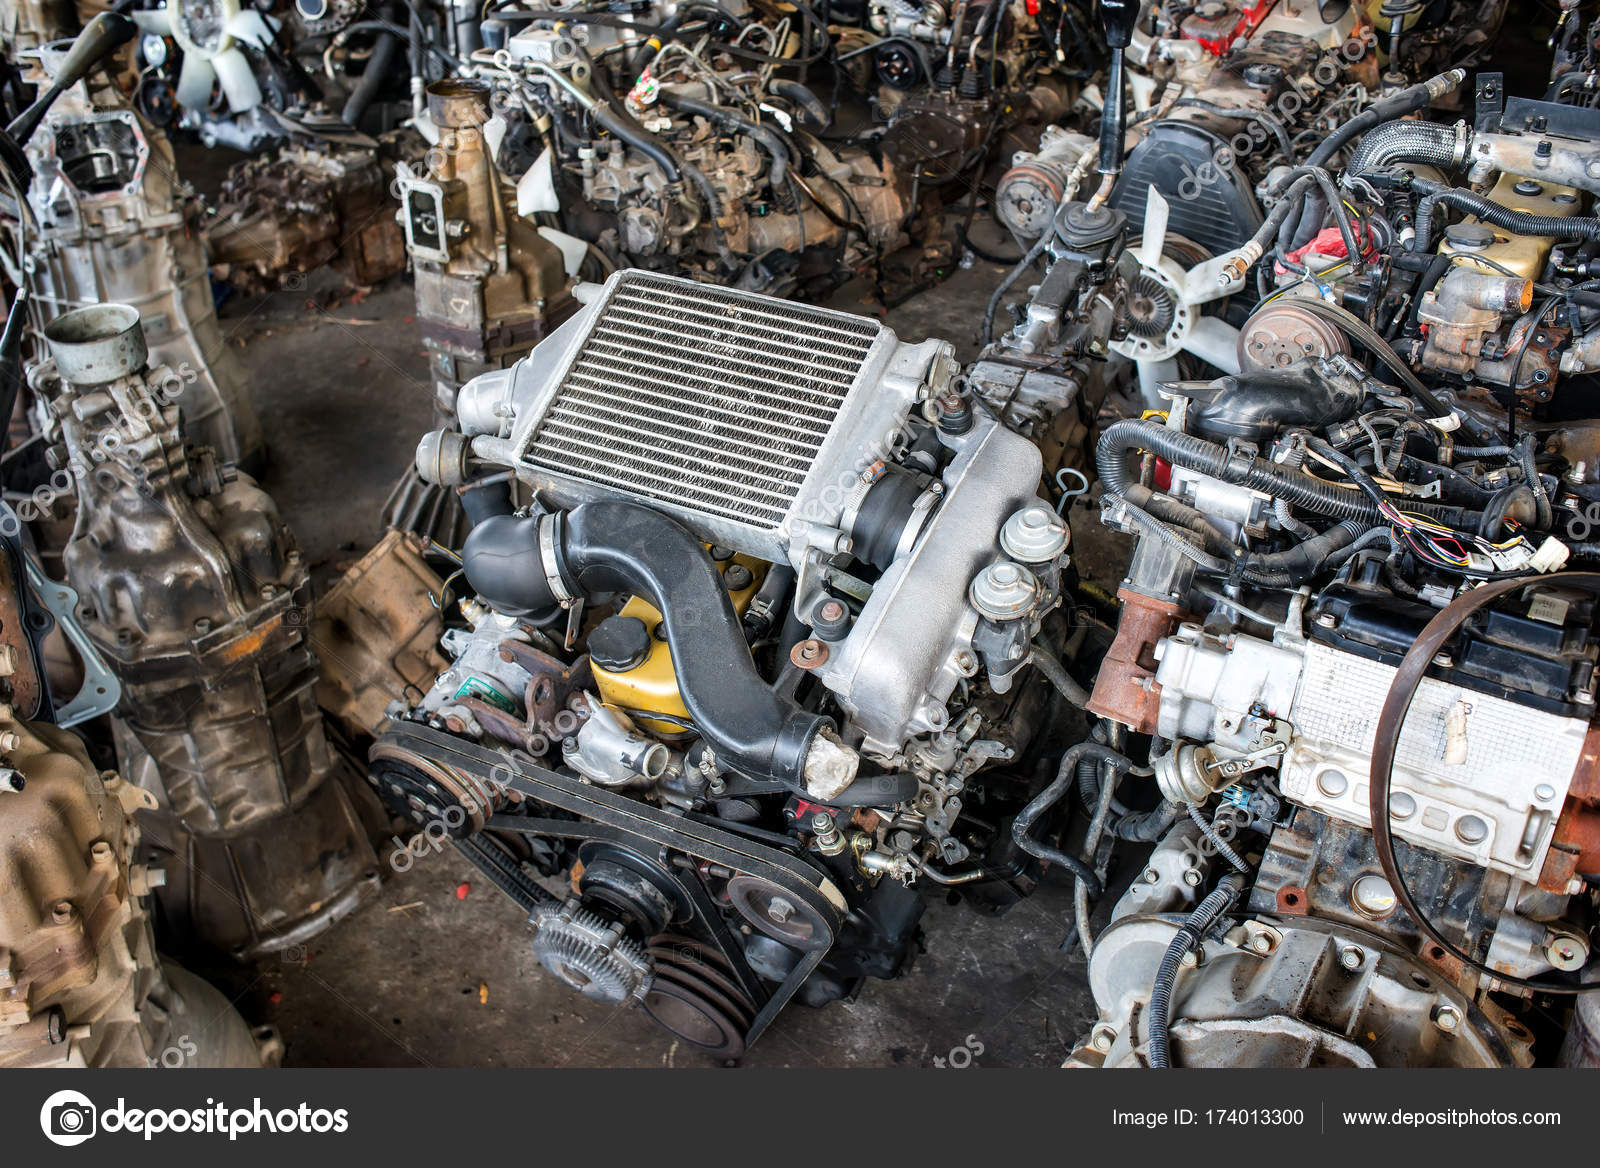 Used Old Car Engine Recycle Garage Sale Photo Indoor Low — Stock ...